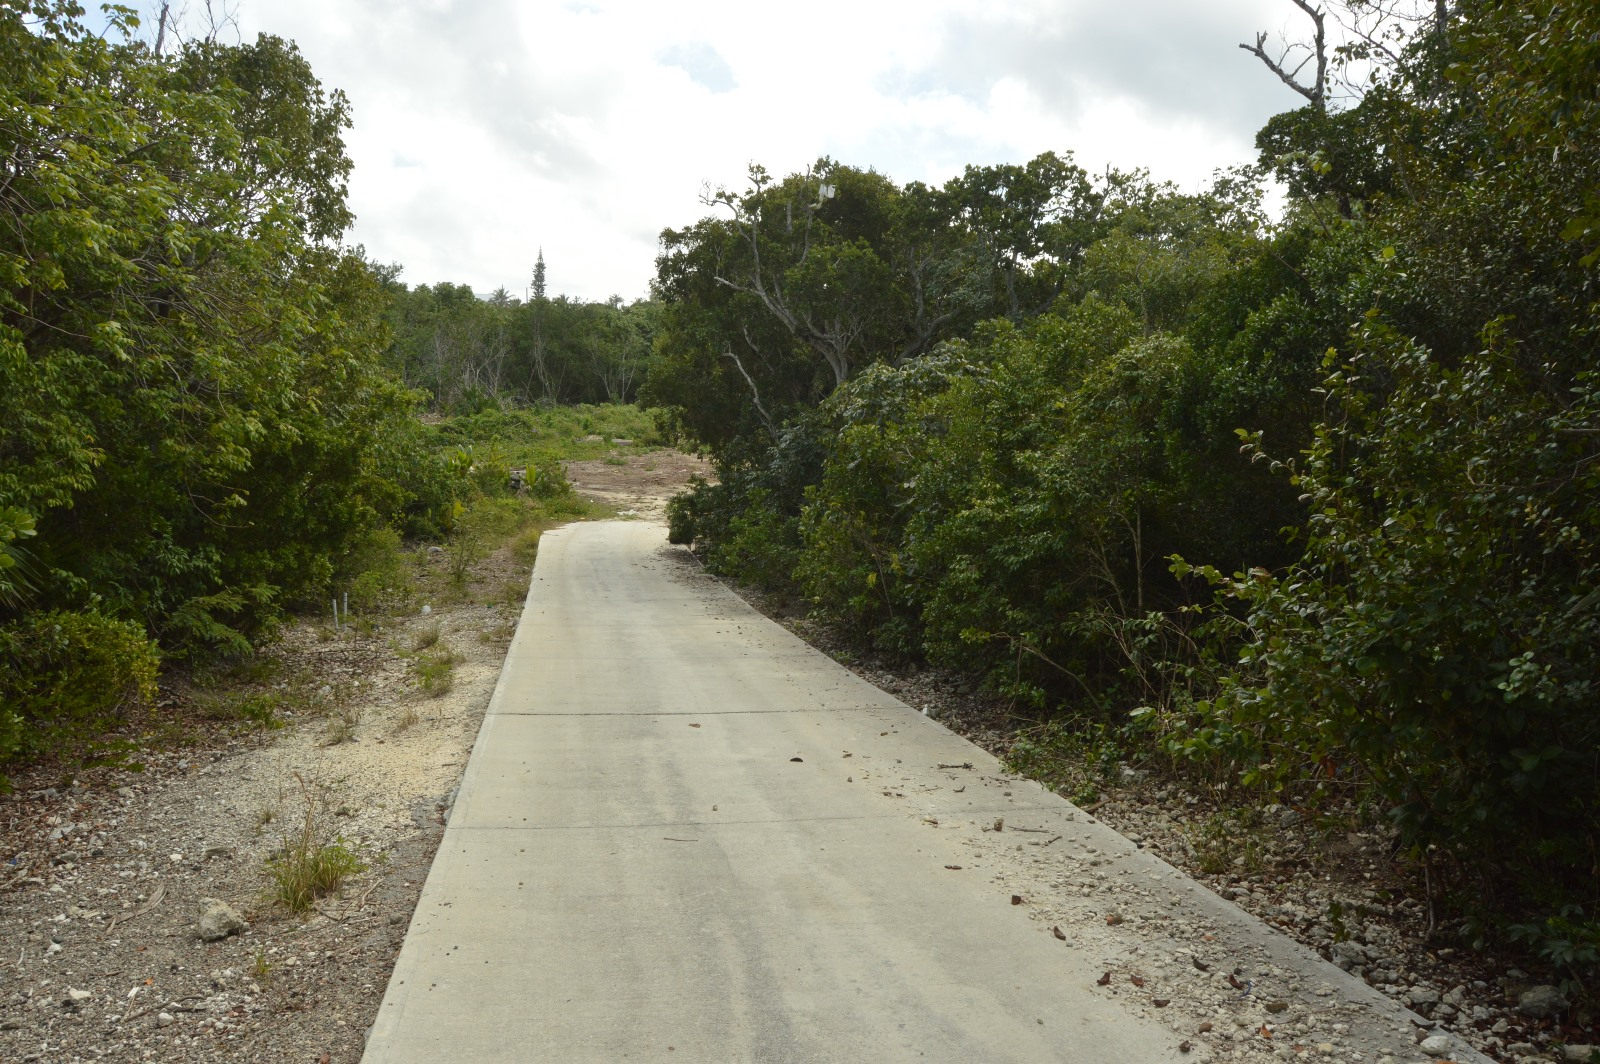 Terre / Lot de terrain pour l Vente à Great Development Oppurtunity in Elbow Cay, Abaco - MLS 29196 Abaco, Bahamas